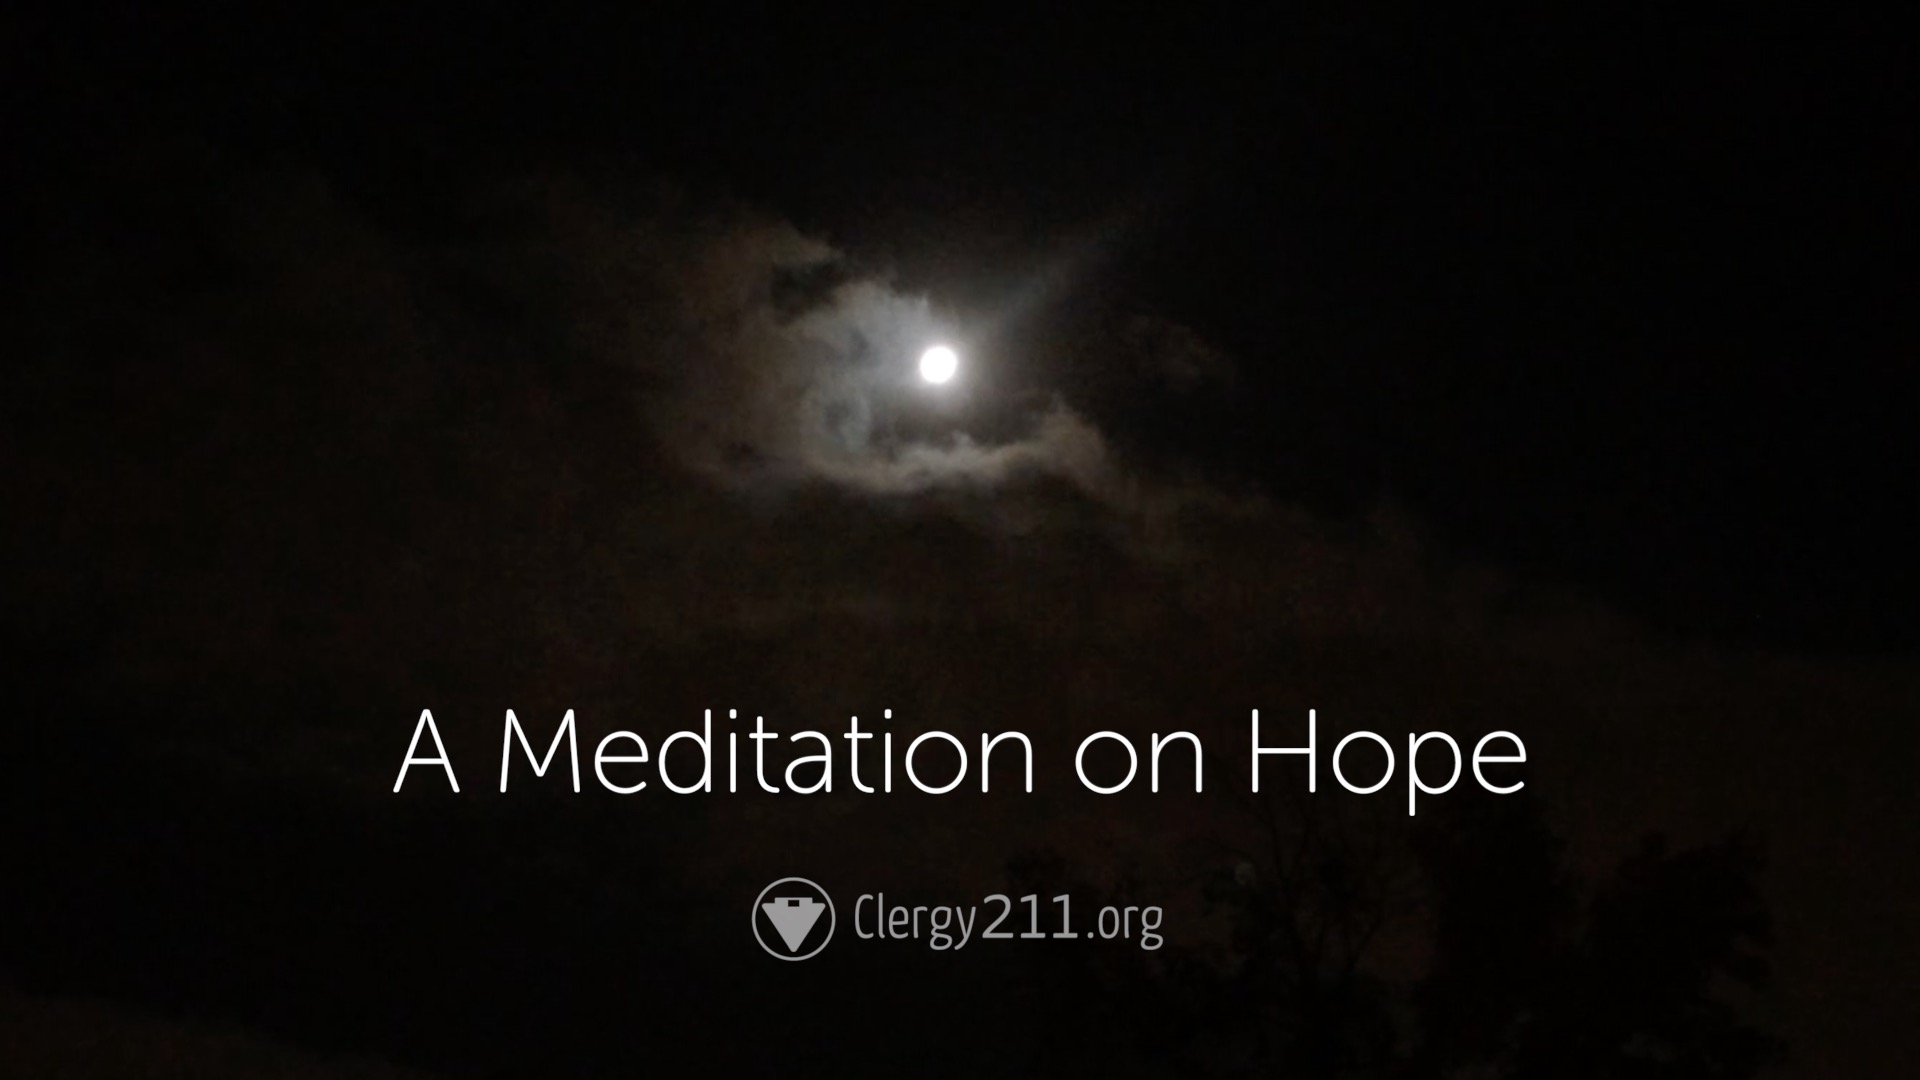 A Meditation on Hope